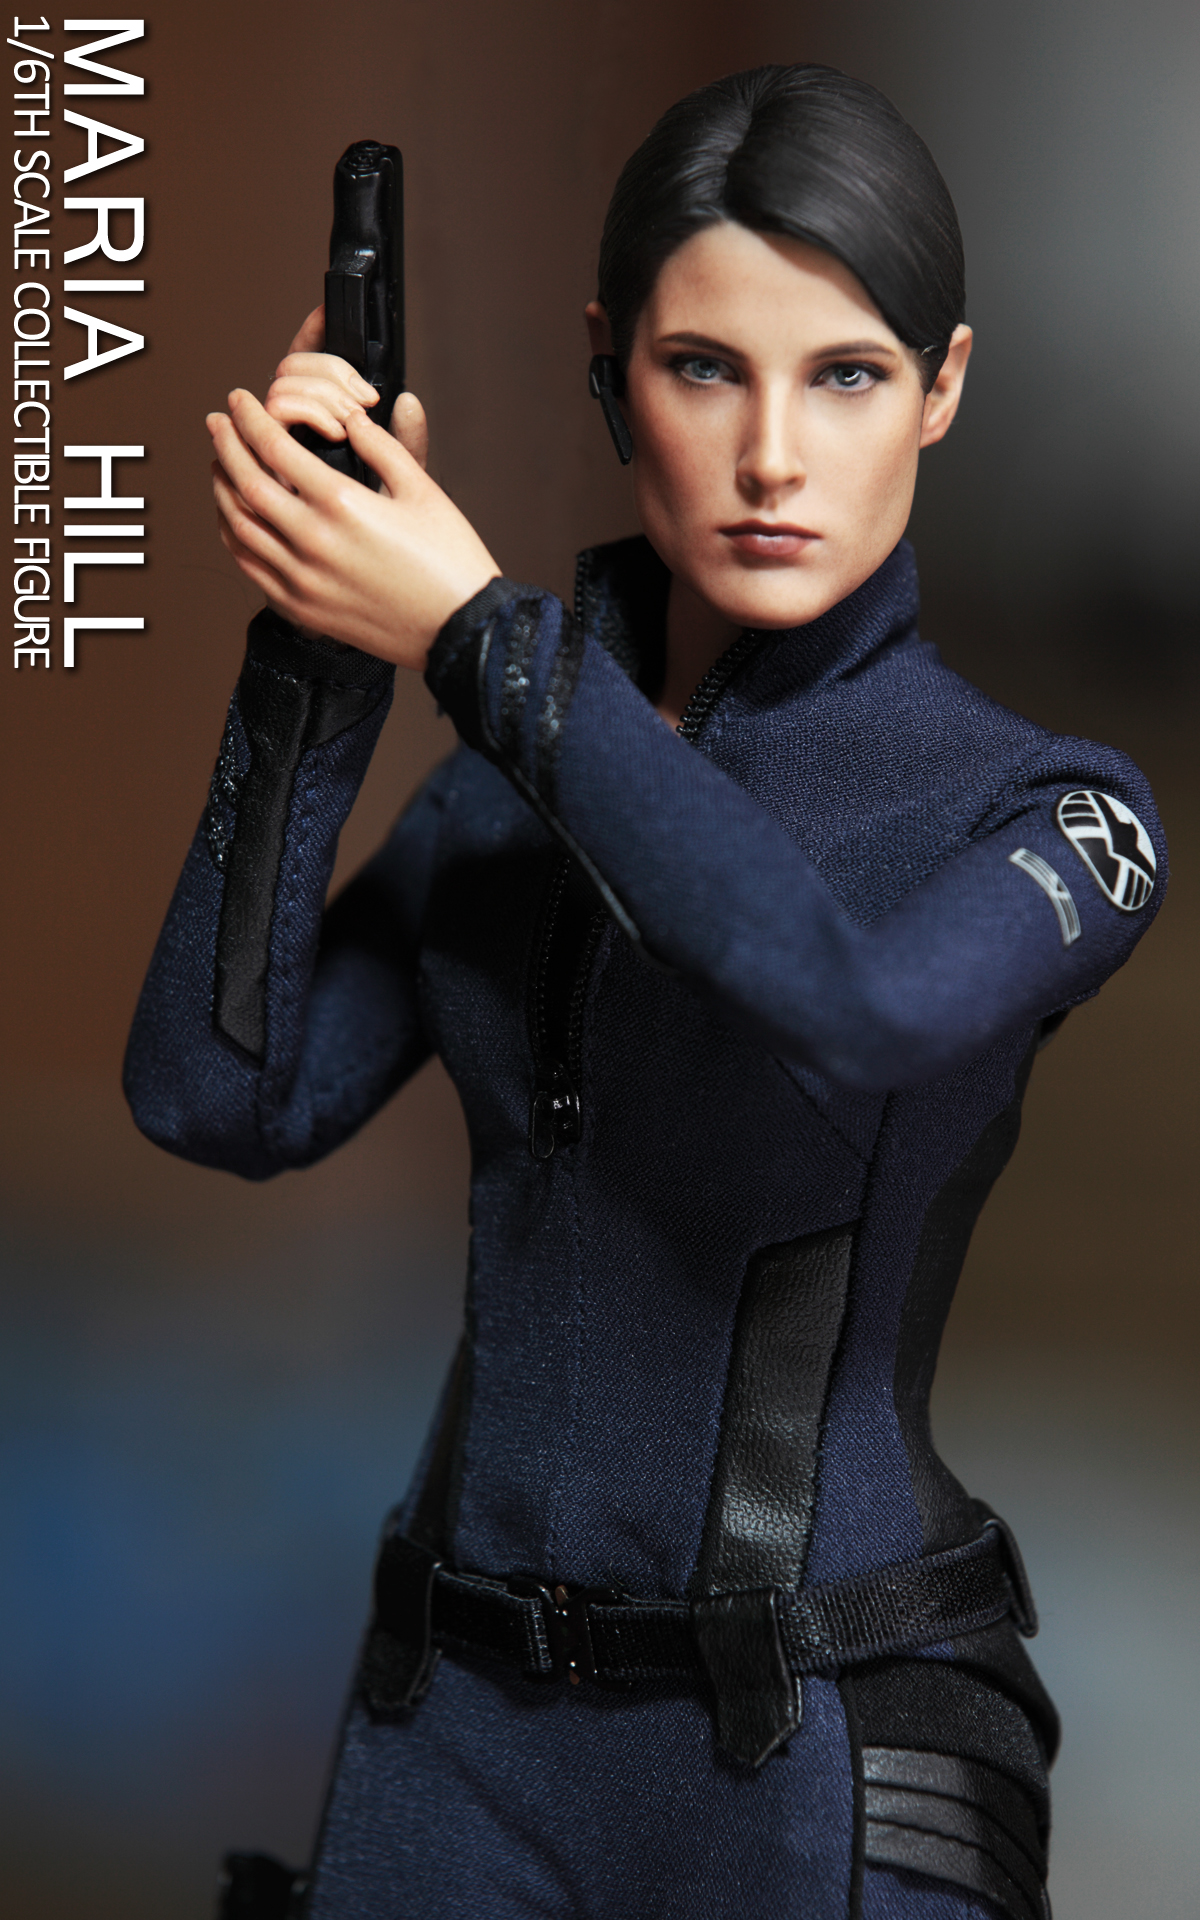 hottoys-avengers-age-of-ultron-maria-hill-picture07